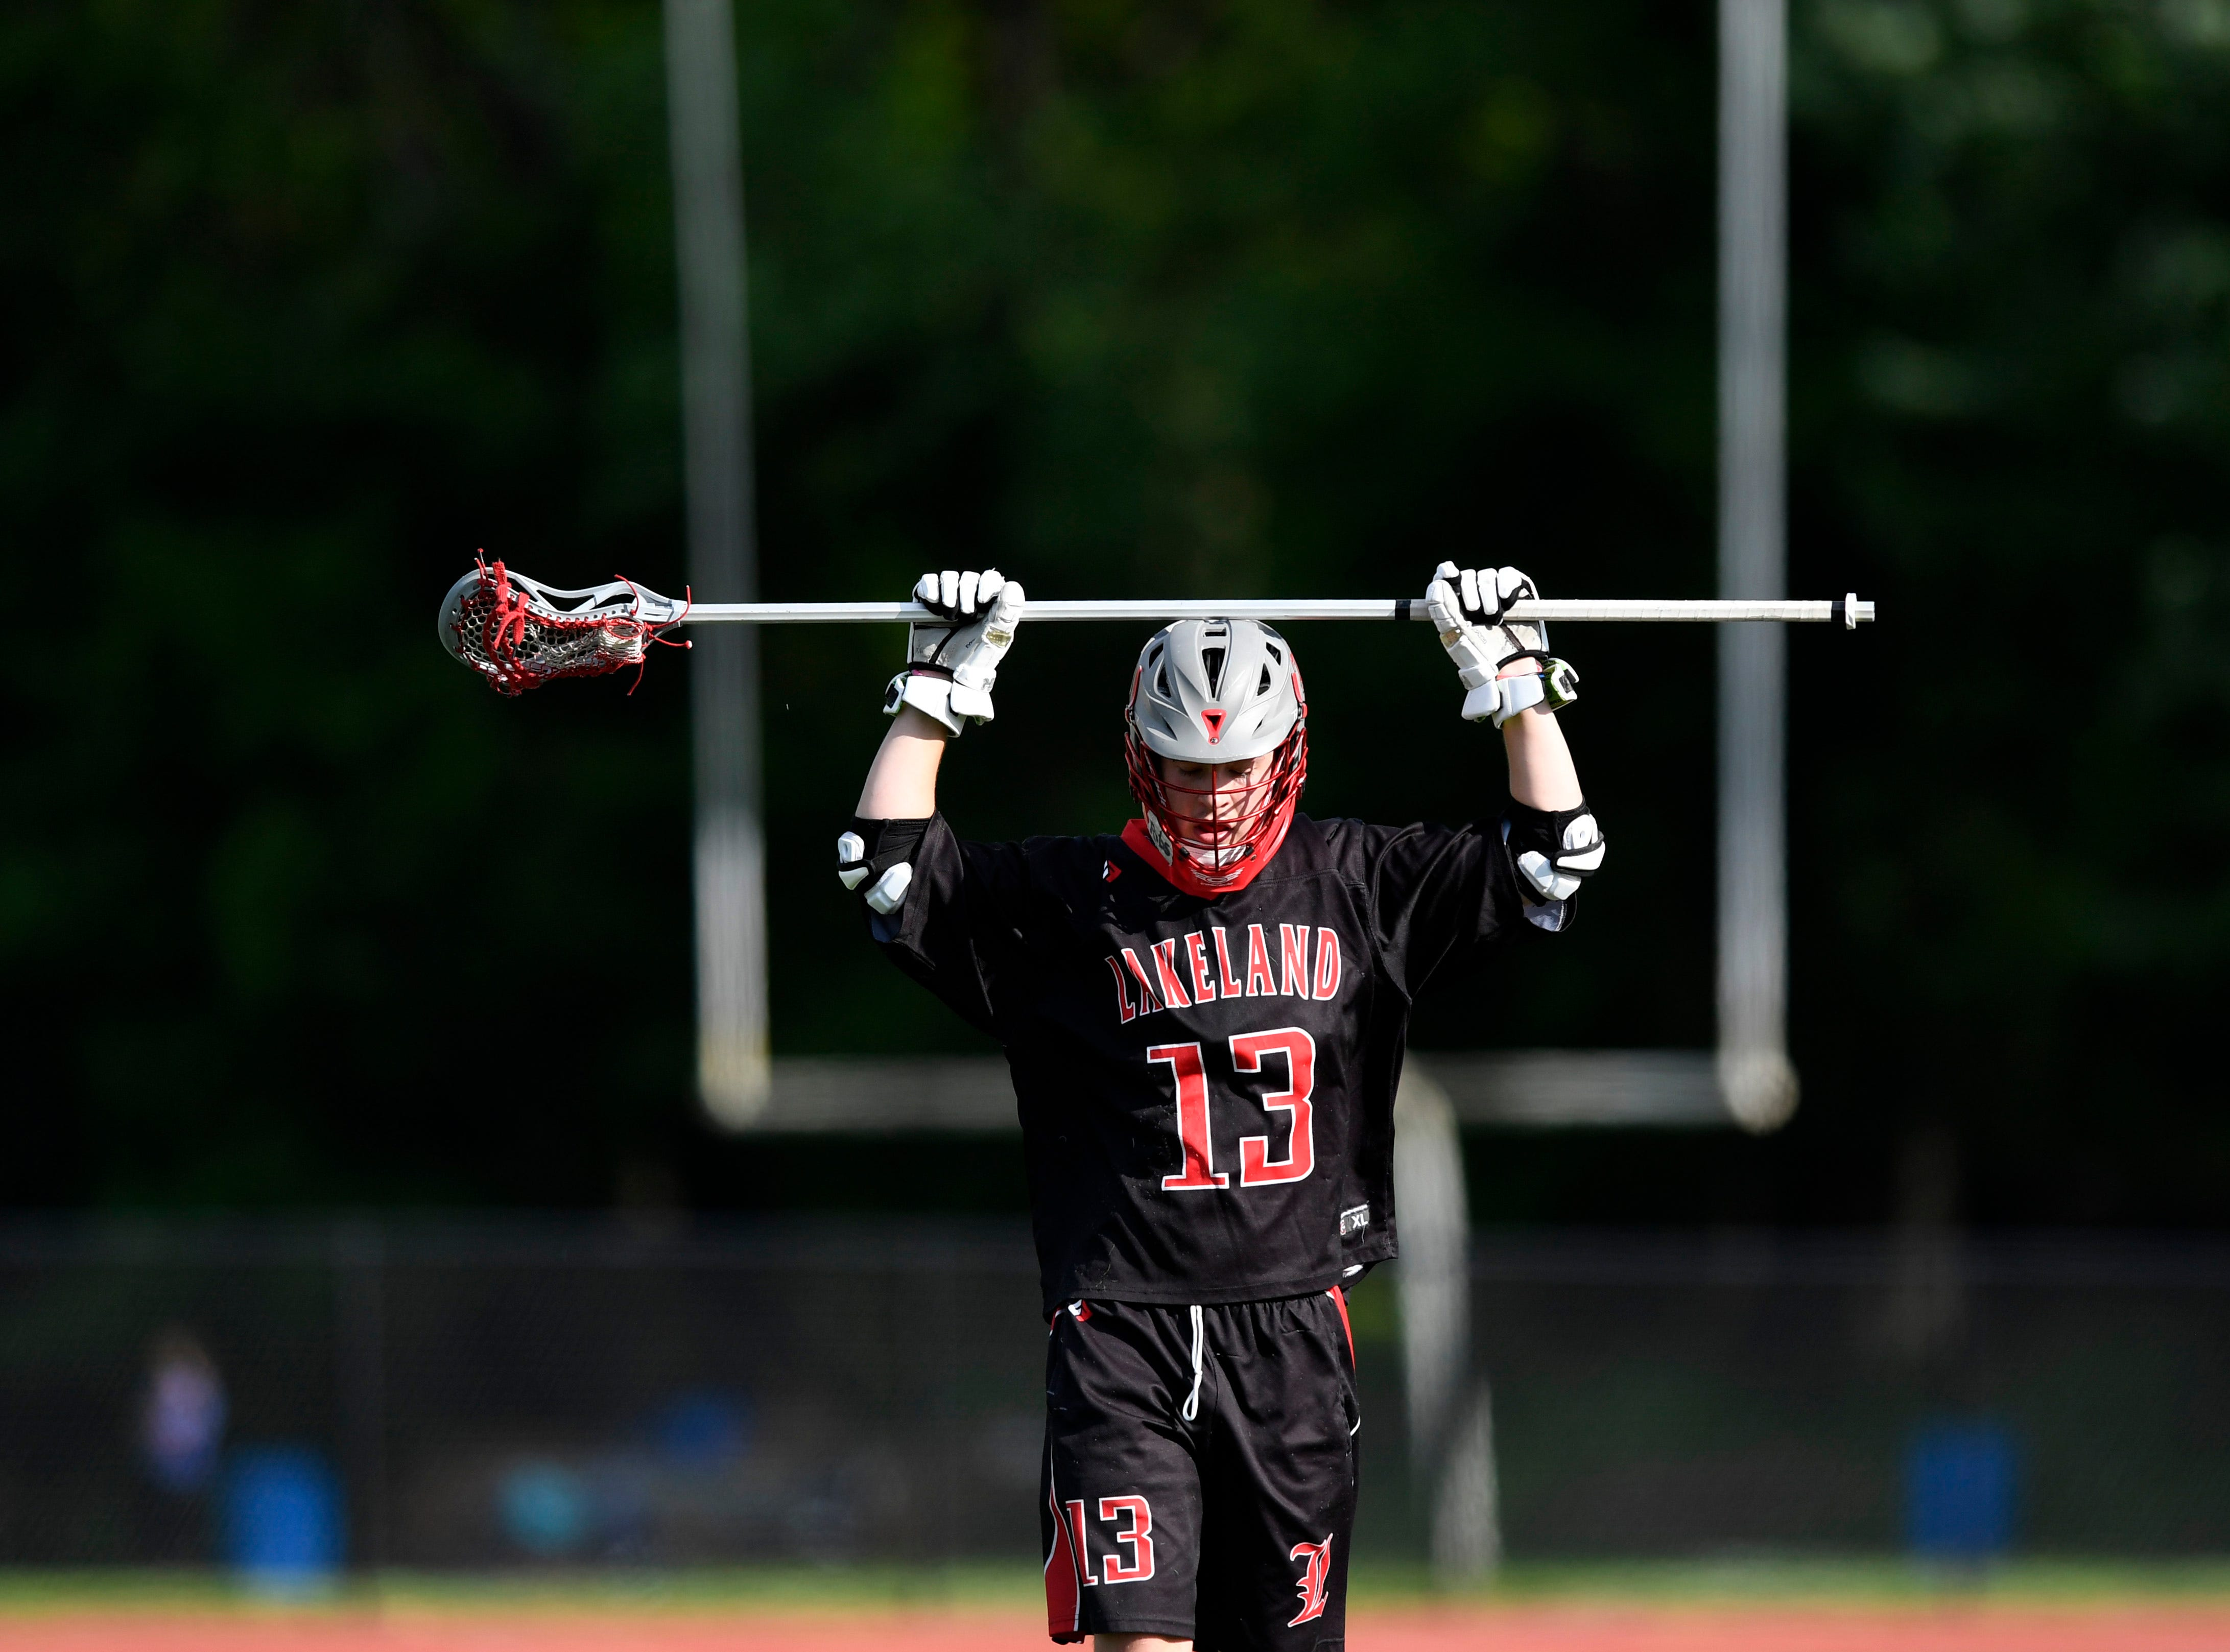 Lakeland's Jake Devore on the field during his team's loss. Northern Valley Demarest defeated Lakeland 6-3 in the first round of the North Group 2 boys lacrosse tournament on Wednesday, May 15, 2019 in Demarest, NJ.